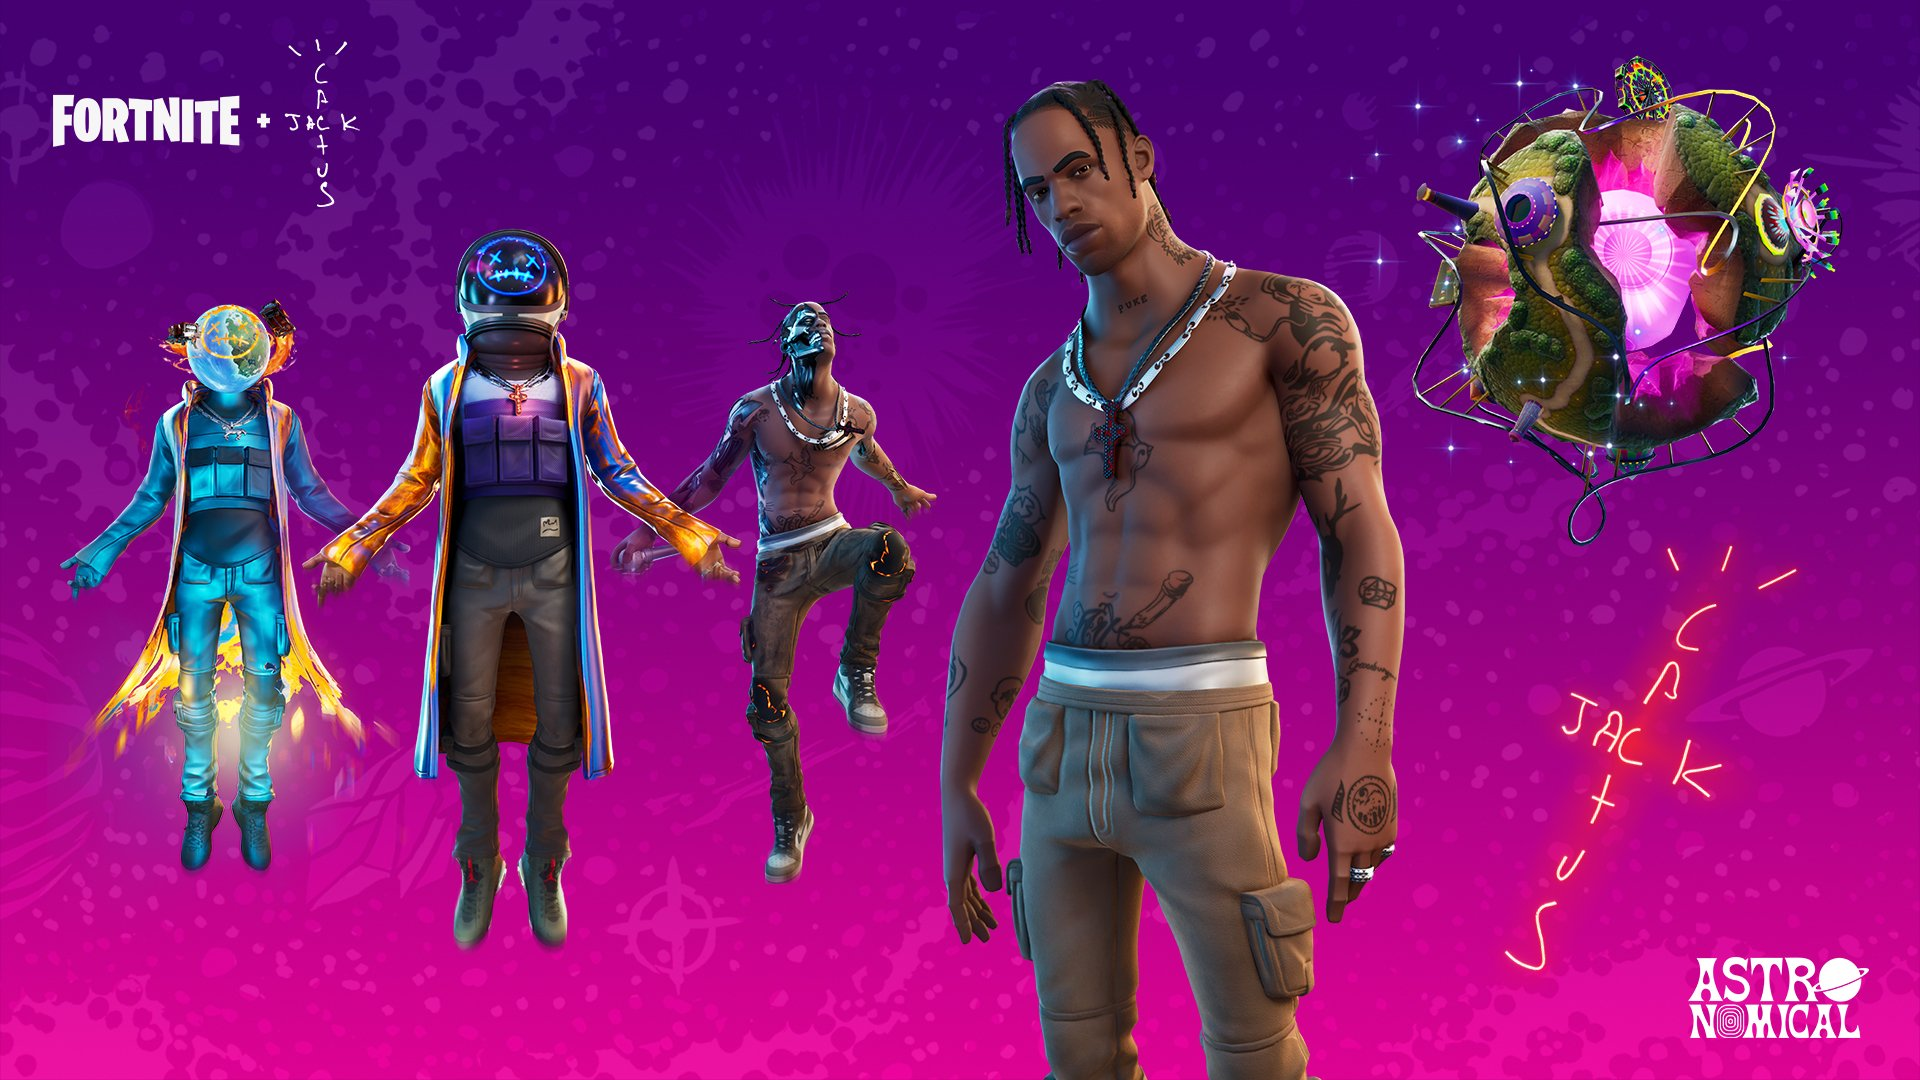 Fortnite Hd Wallpaper Background Image 1920x1080 Id 1076155 Wallpaper Abyss